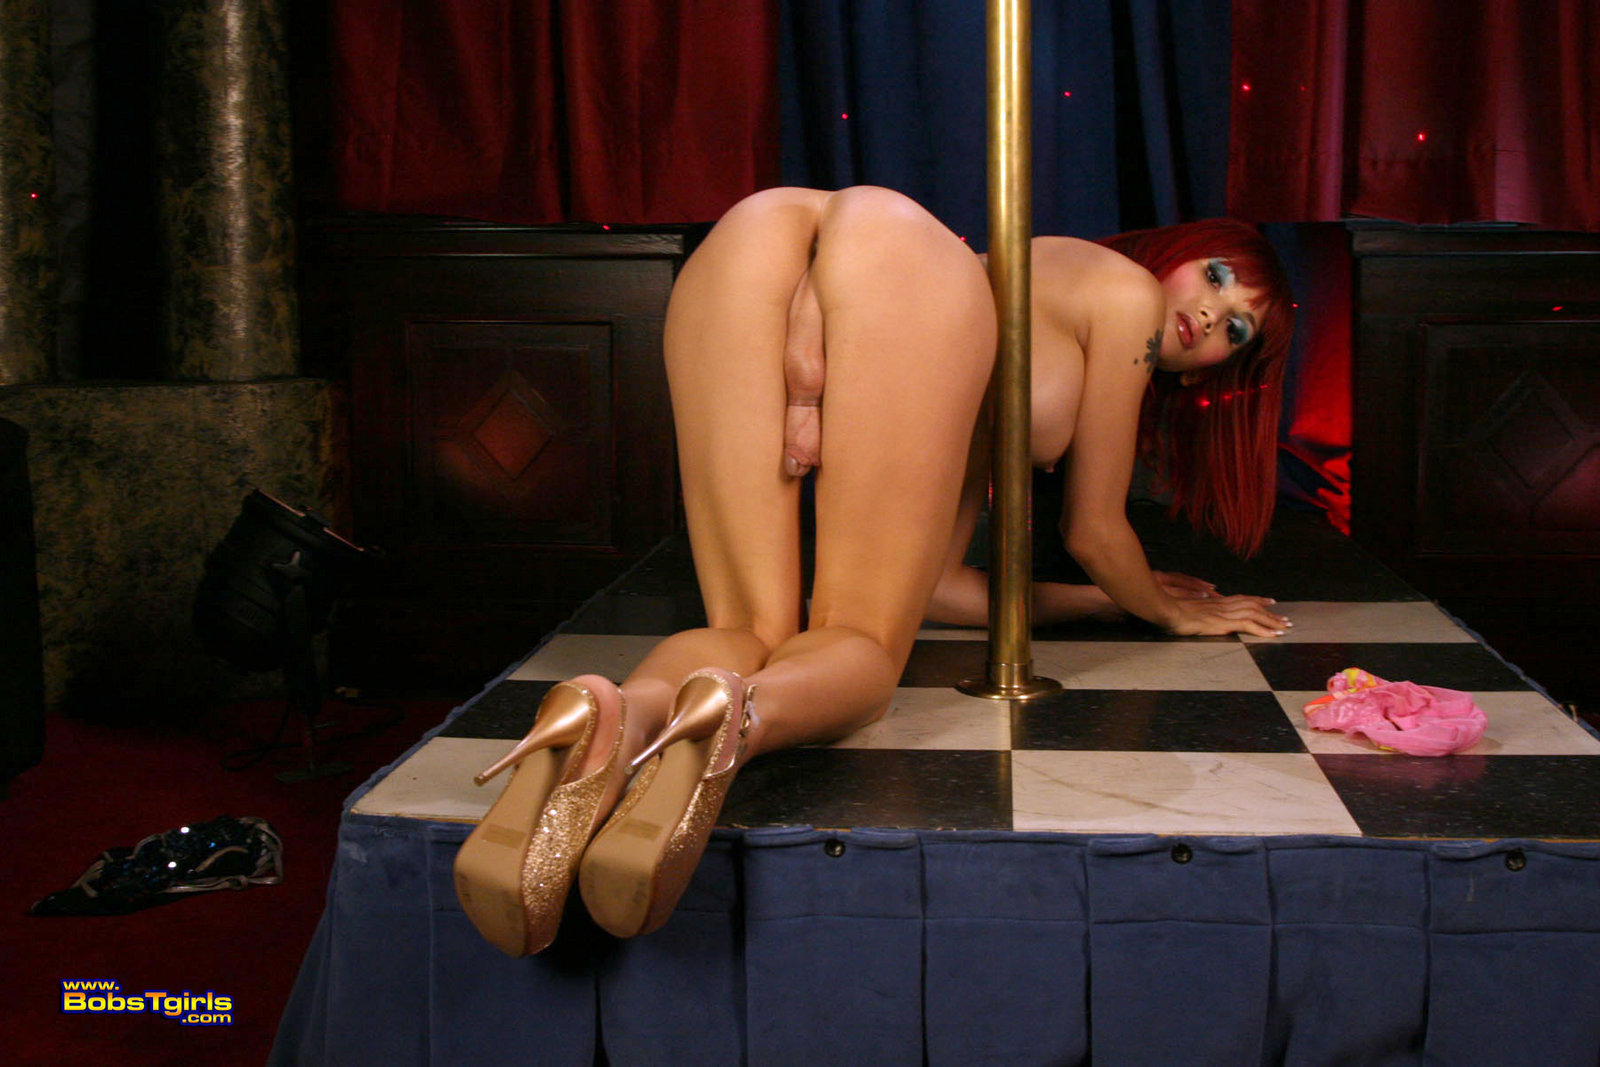 Nude pole dancing